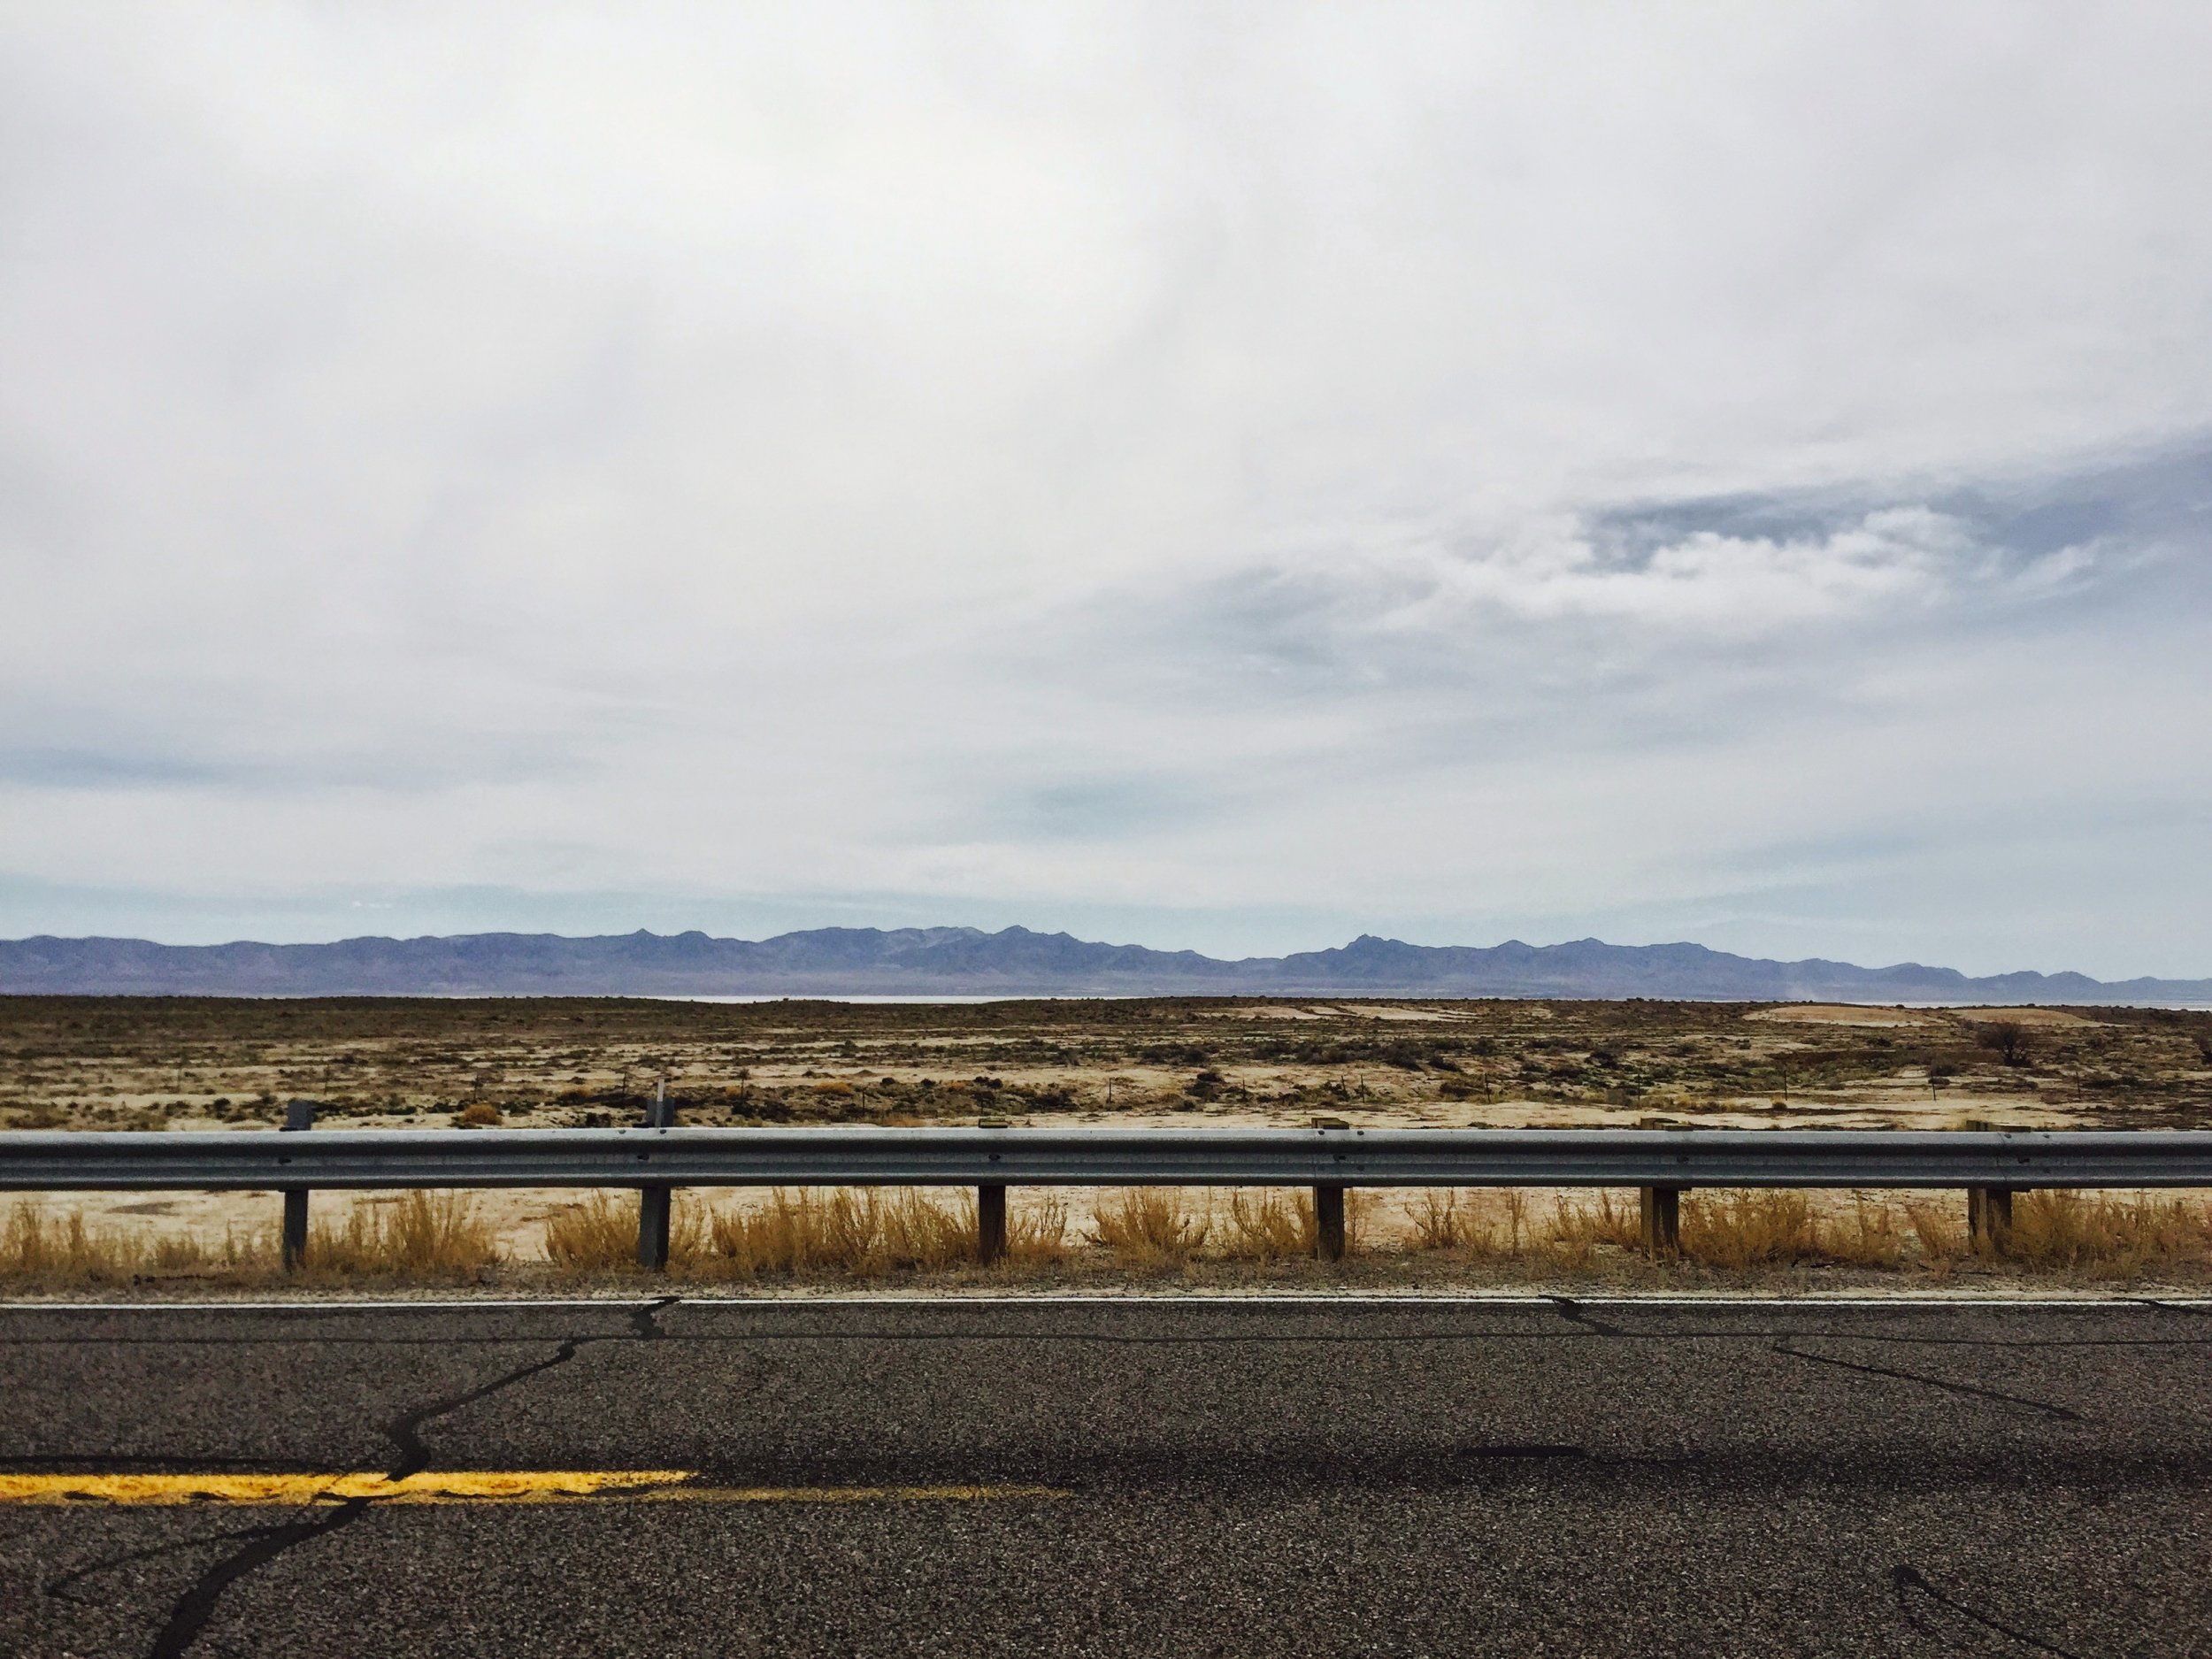 Toyota Of The Desert >> Route 50: Driving America's 'Loneliest Road'